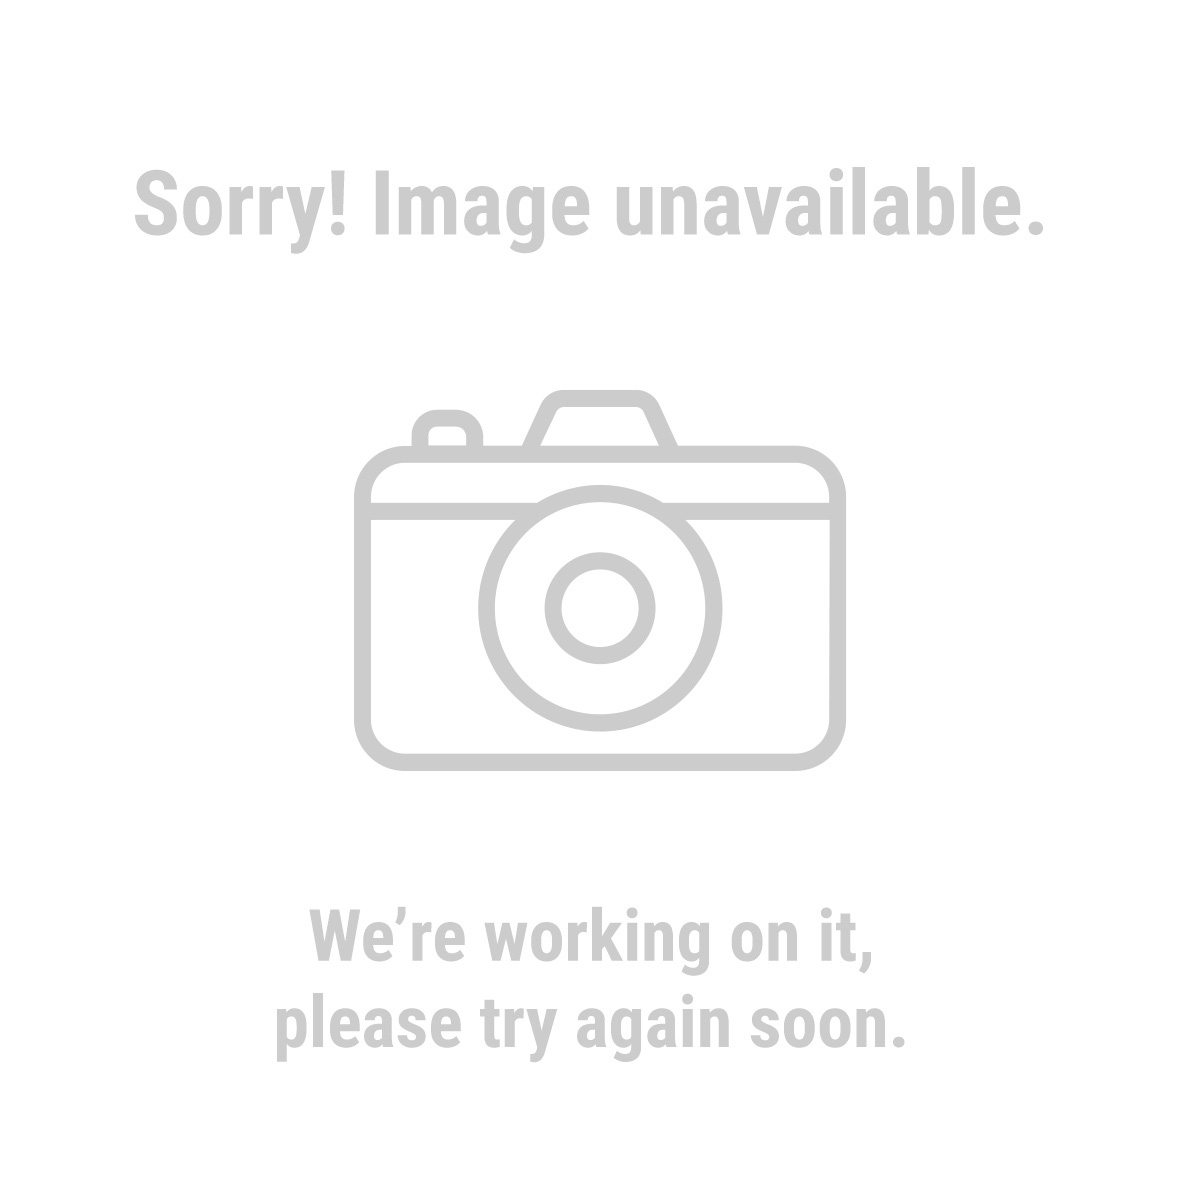 Central Pneumatic® 67501 Portable Air Compressor, 2 Horsepower, 8 Gallon, 125 PSI